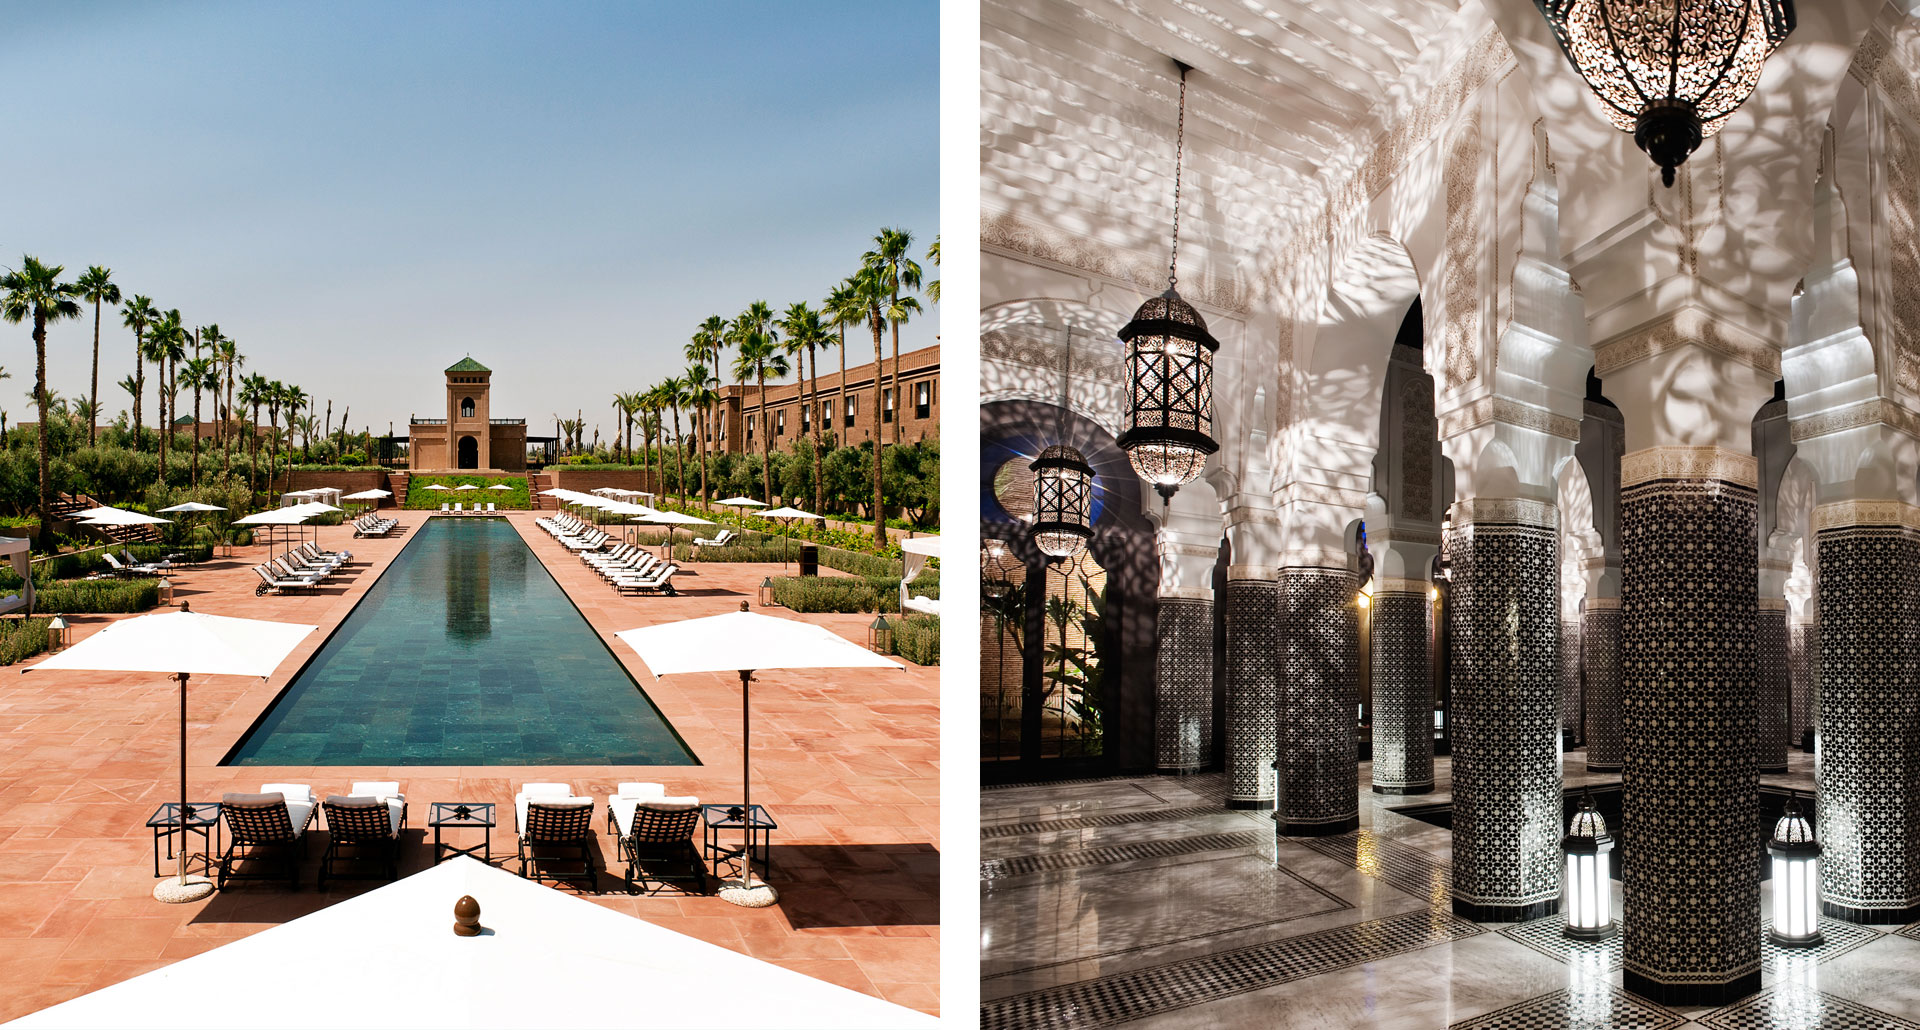 Selman Marrakech - boutique hotel in Marrakech